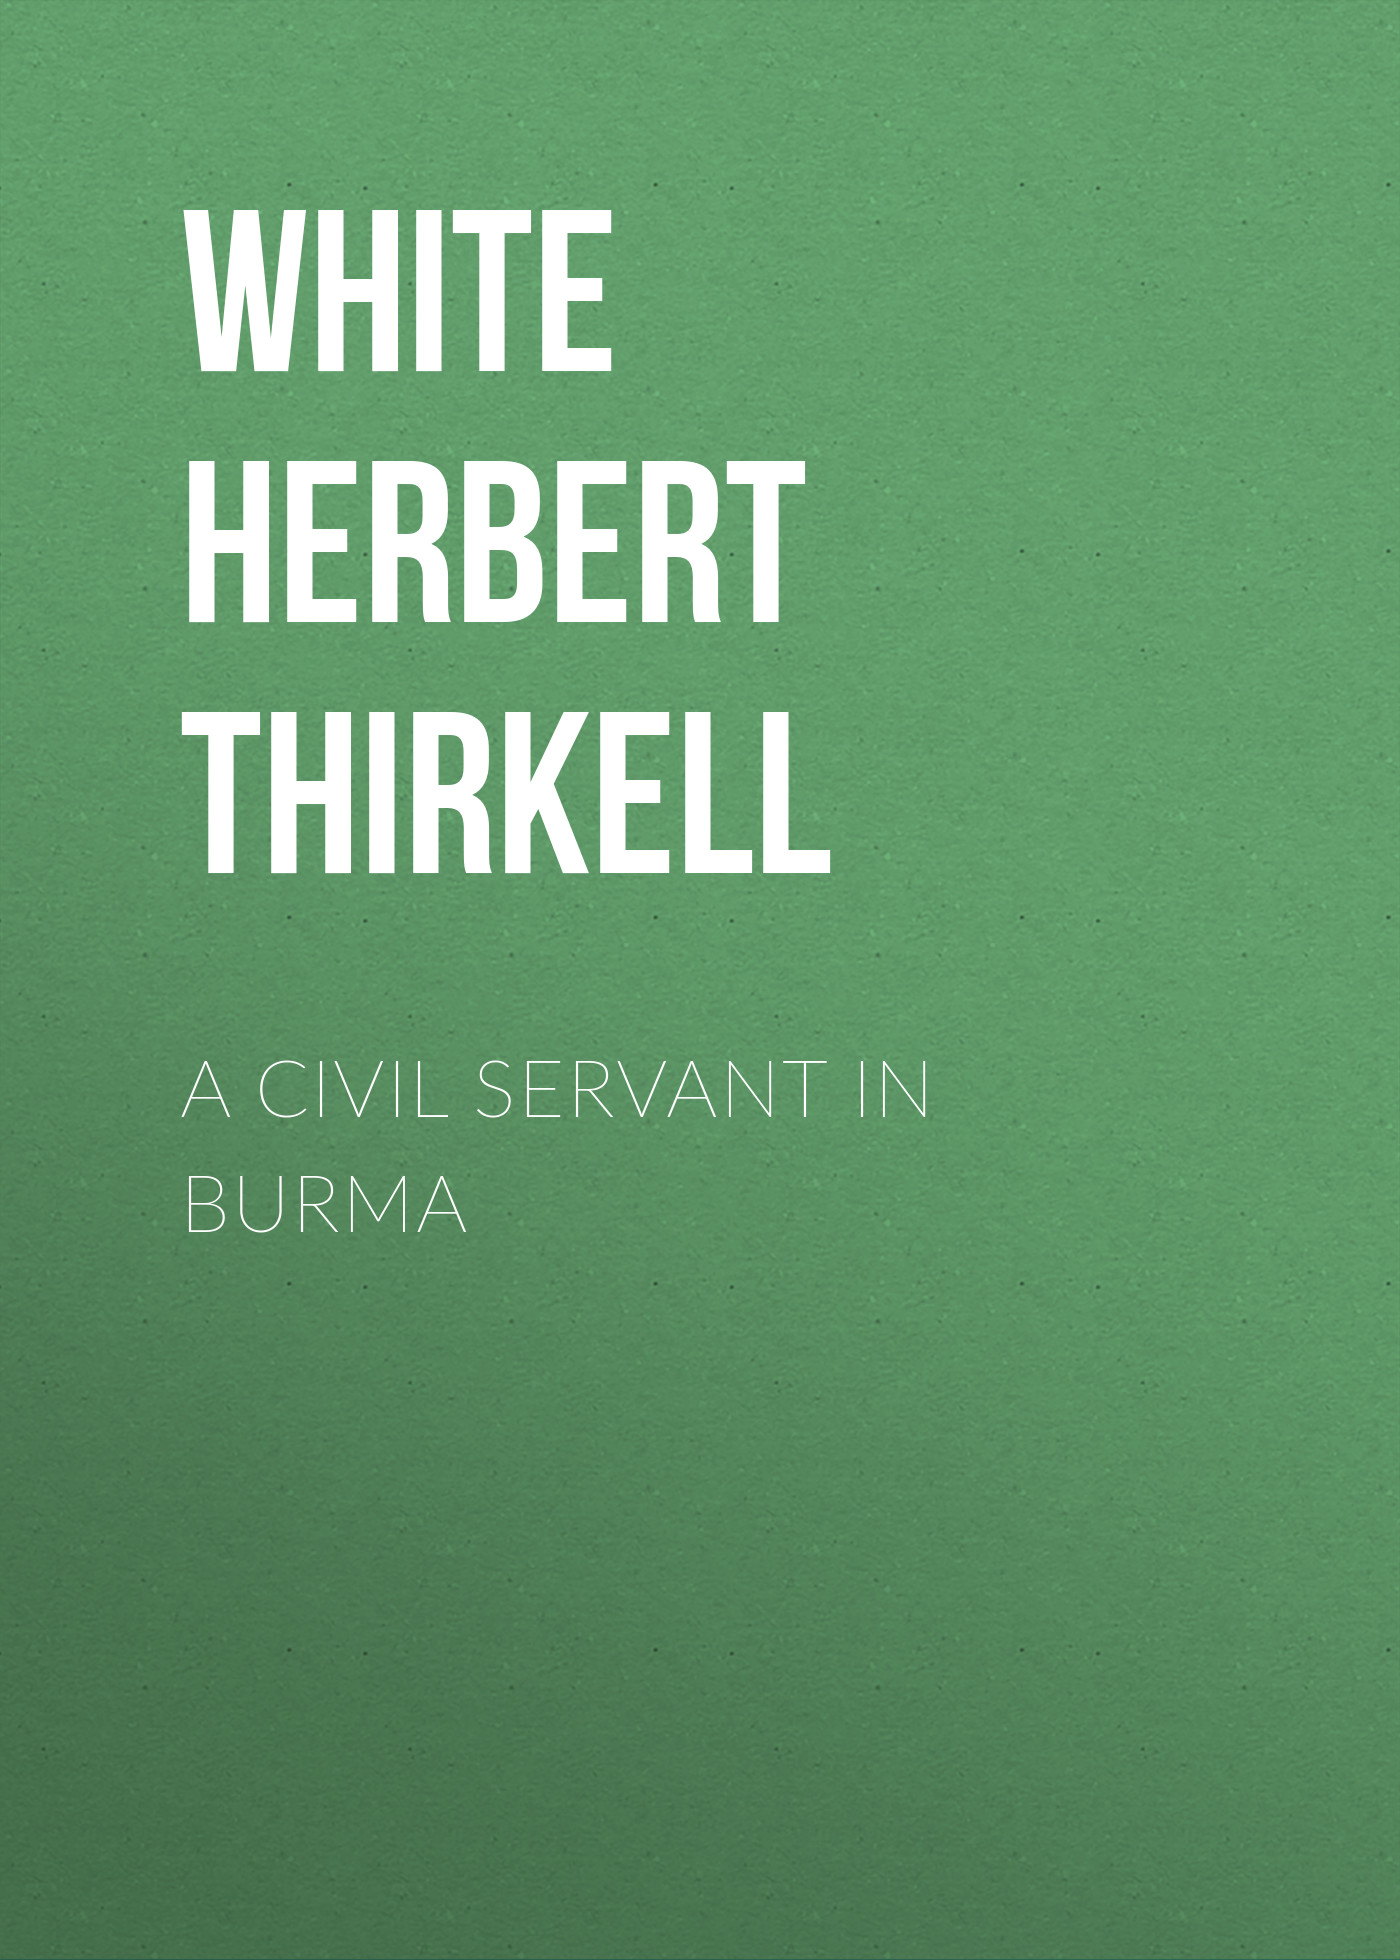 White Herbert Thirkell A Civil Servant in Burma